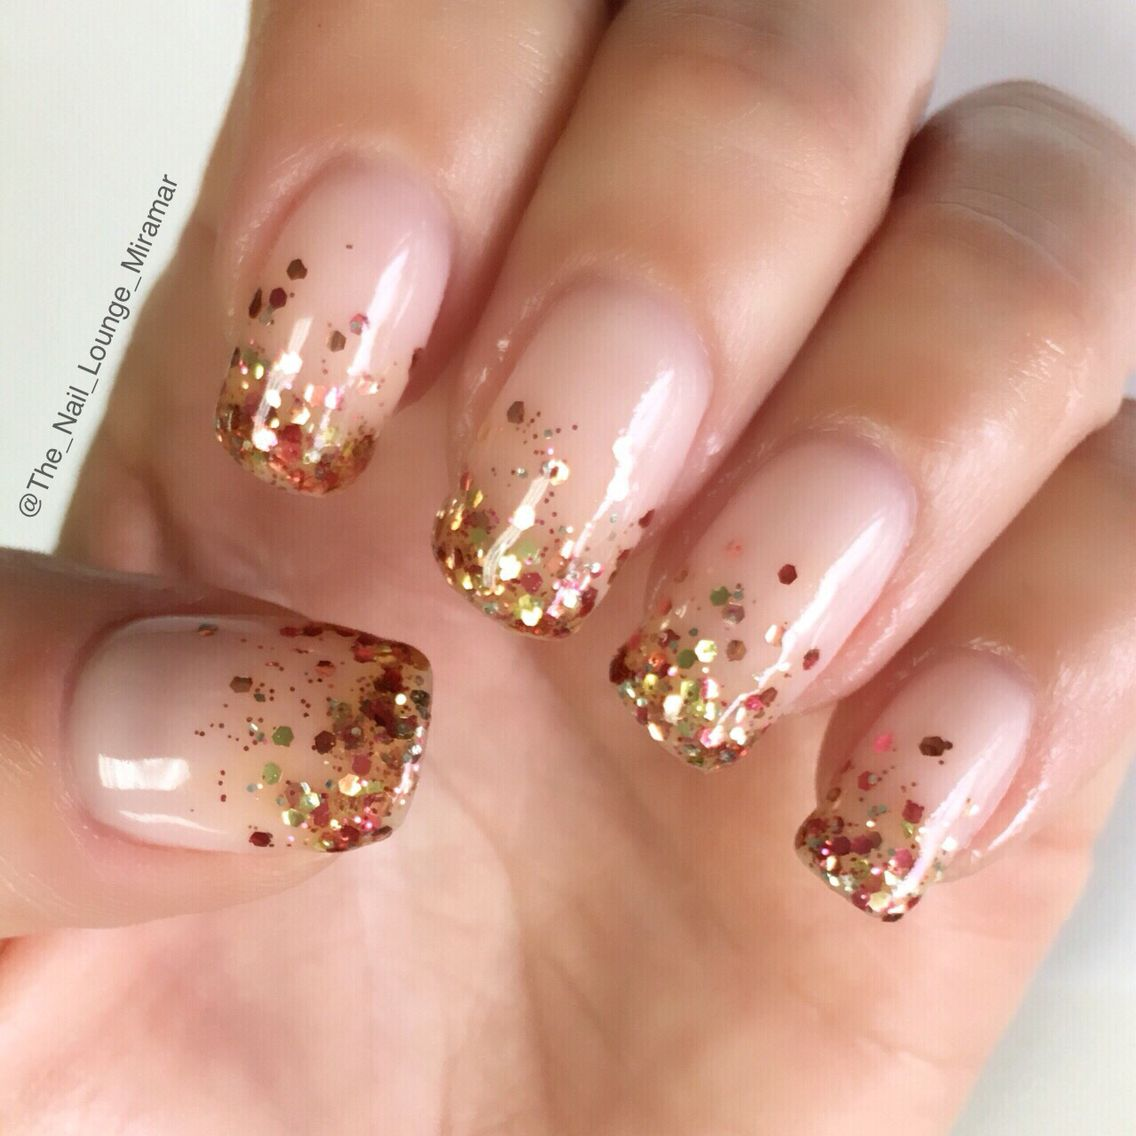 Autumn colors fall glitter ombre nail art design | Nail ...